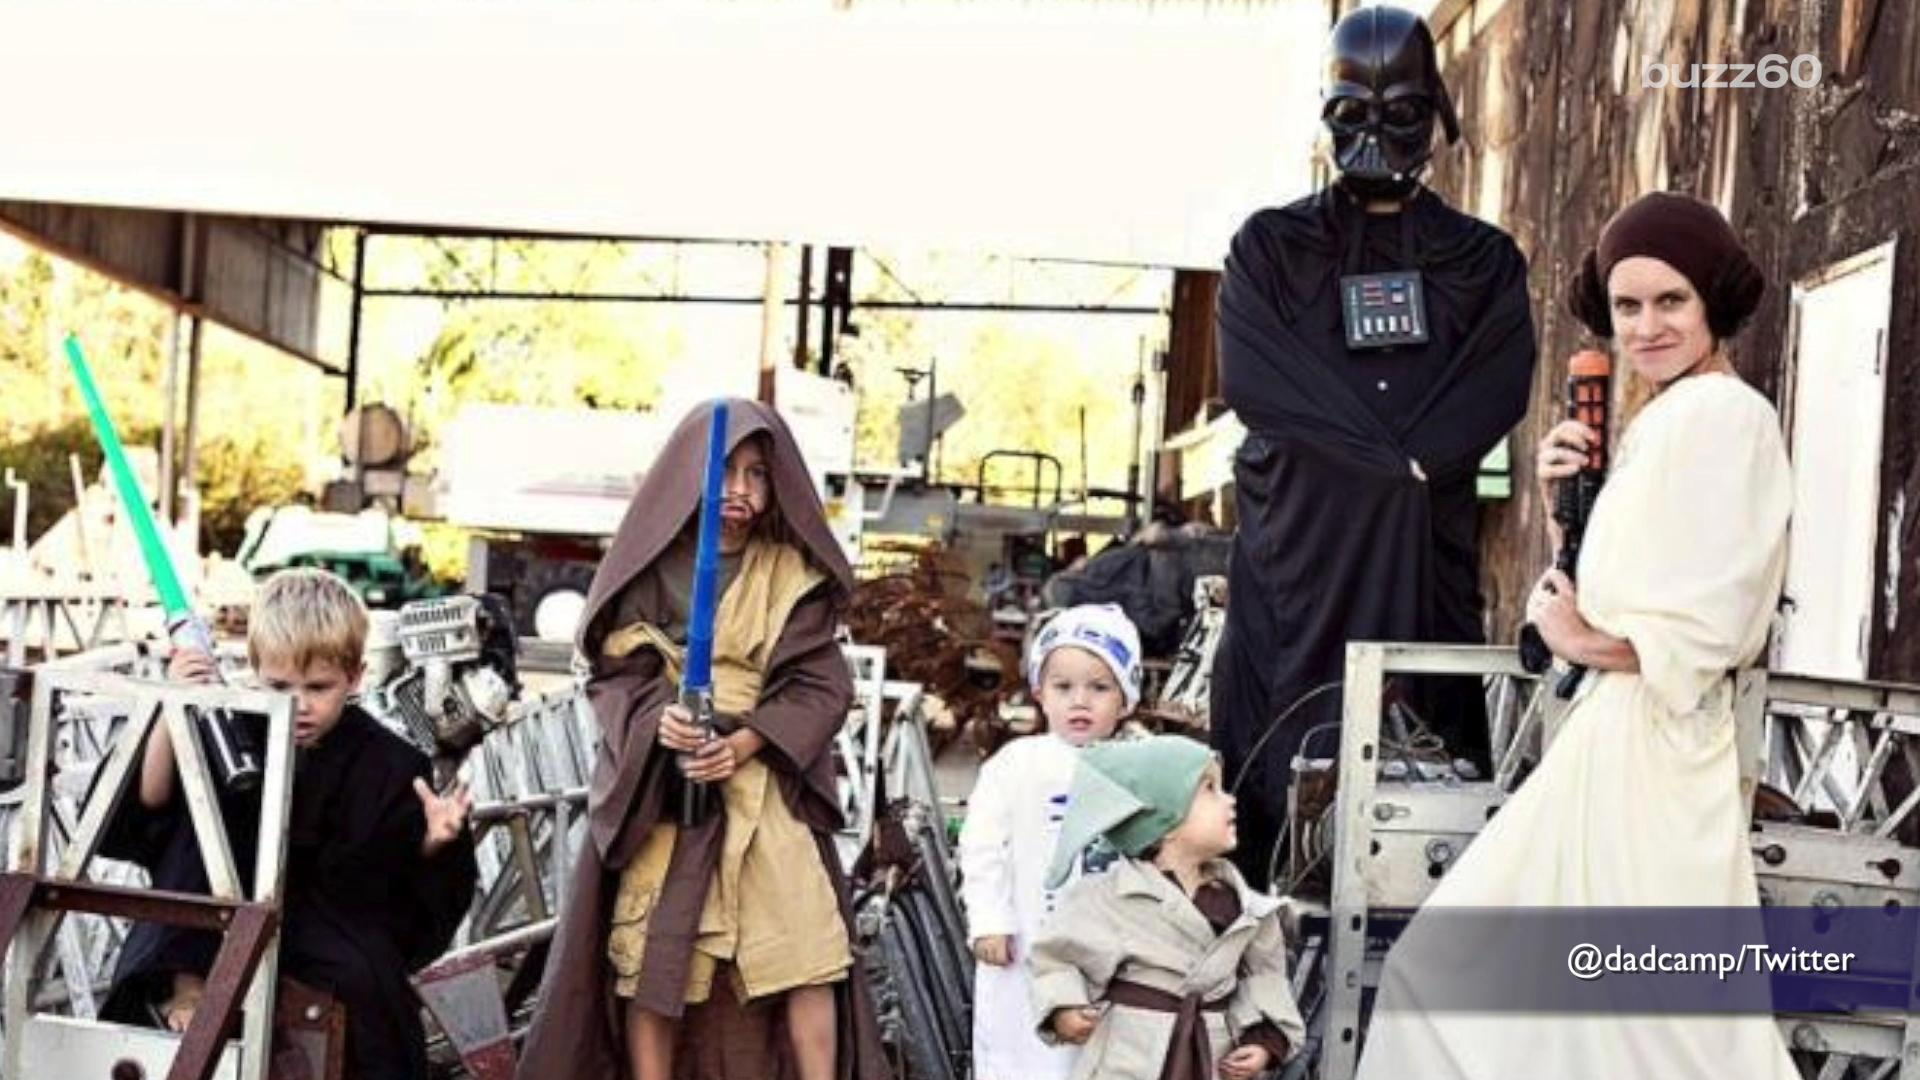 Halloween group costume ideas for the whole family